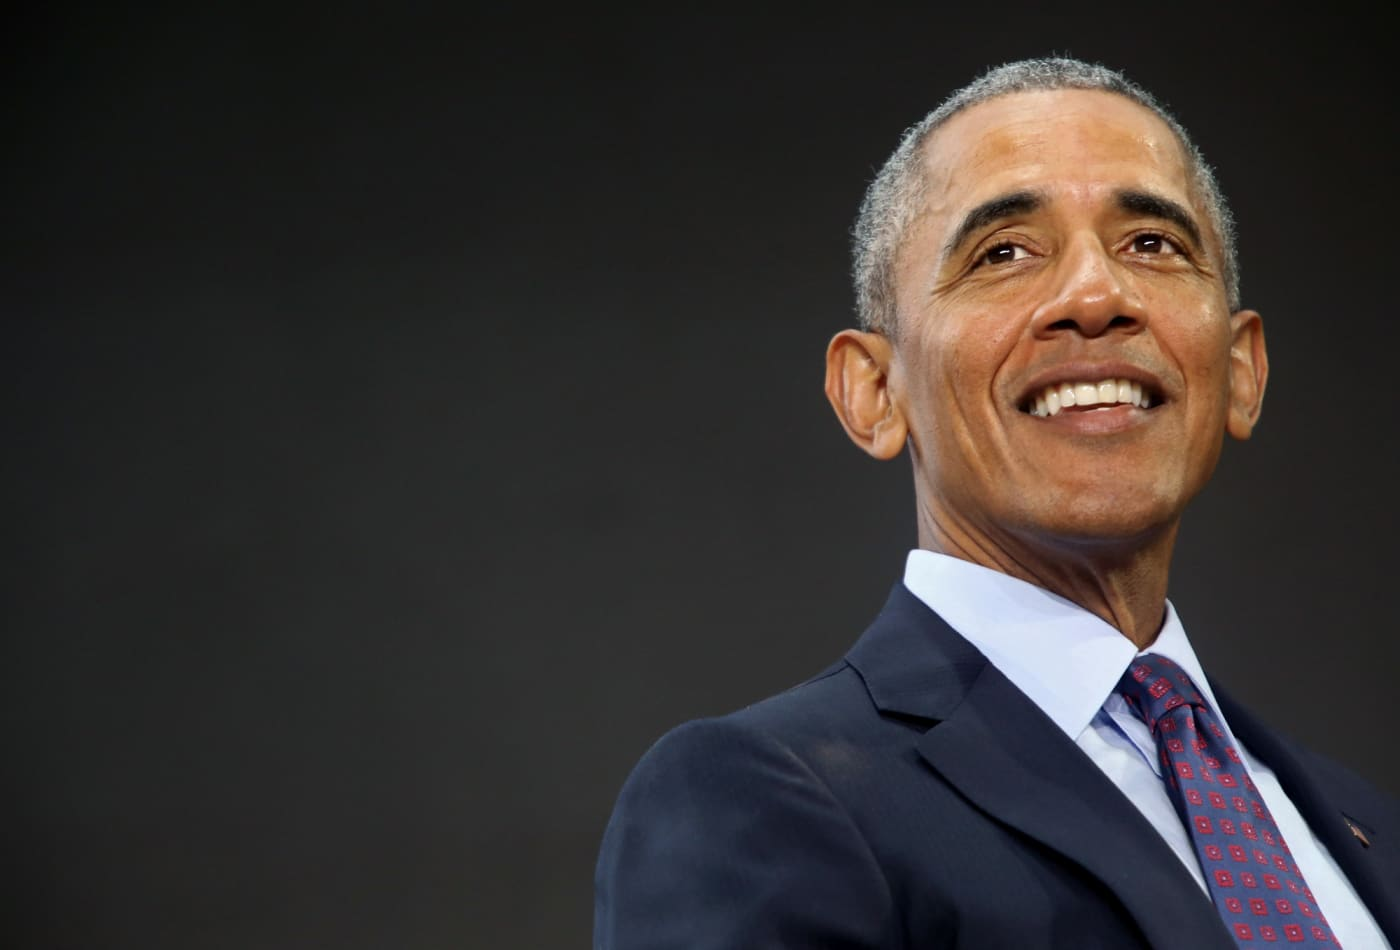 a953233090 Barack Obama shares an inspiring challenge for 2019   I m asking you to  make a commitment